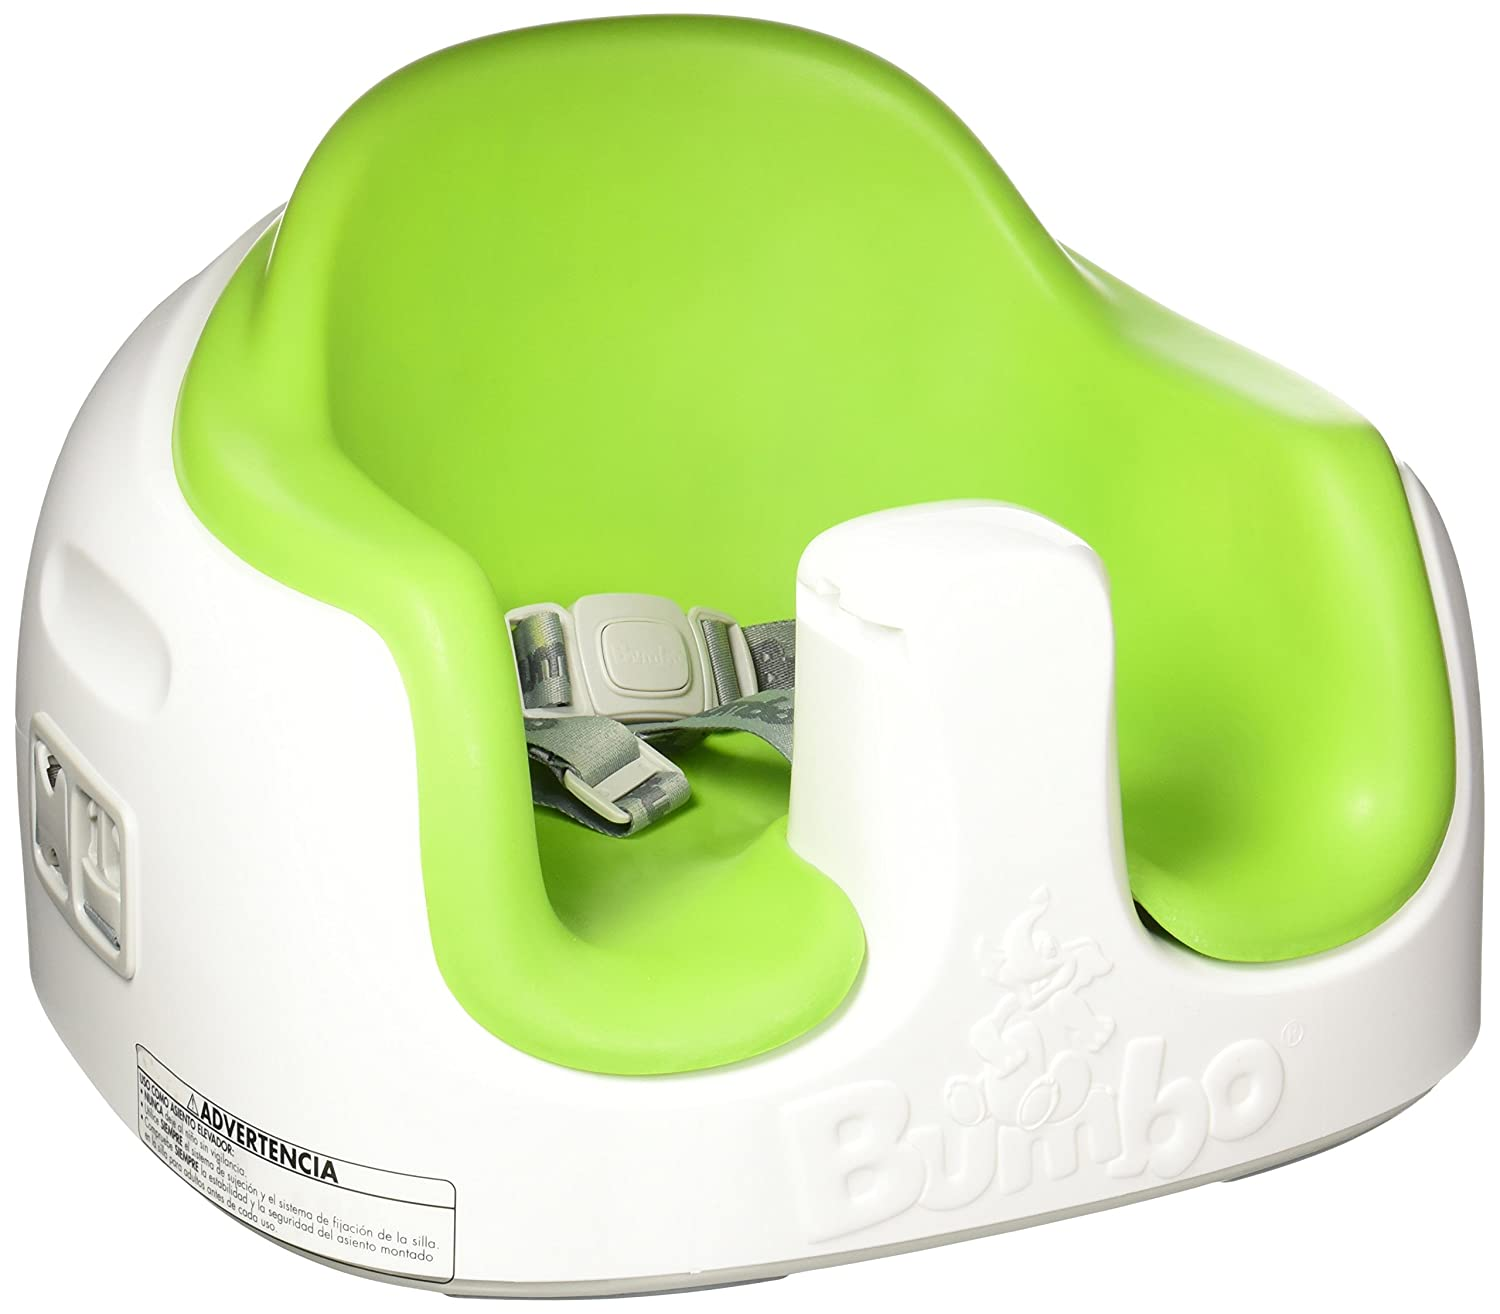 Bumboo B11100 Baby Toddler Adjustable Height 3-in-1 Non-Slip Multi Seat with Food/Activity Tray and Safety Straps, Lime Green